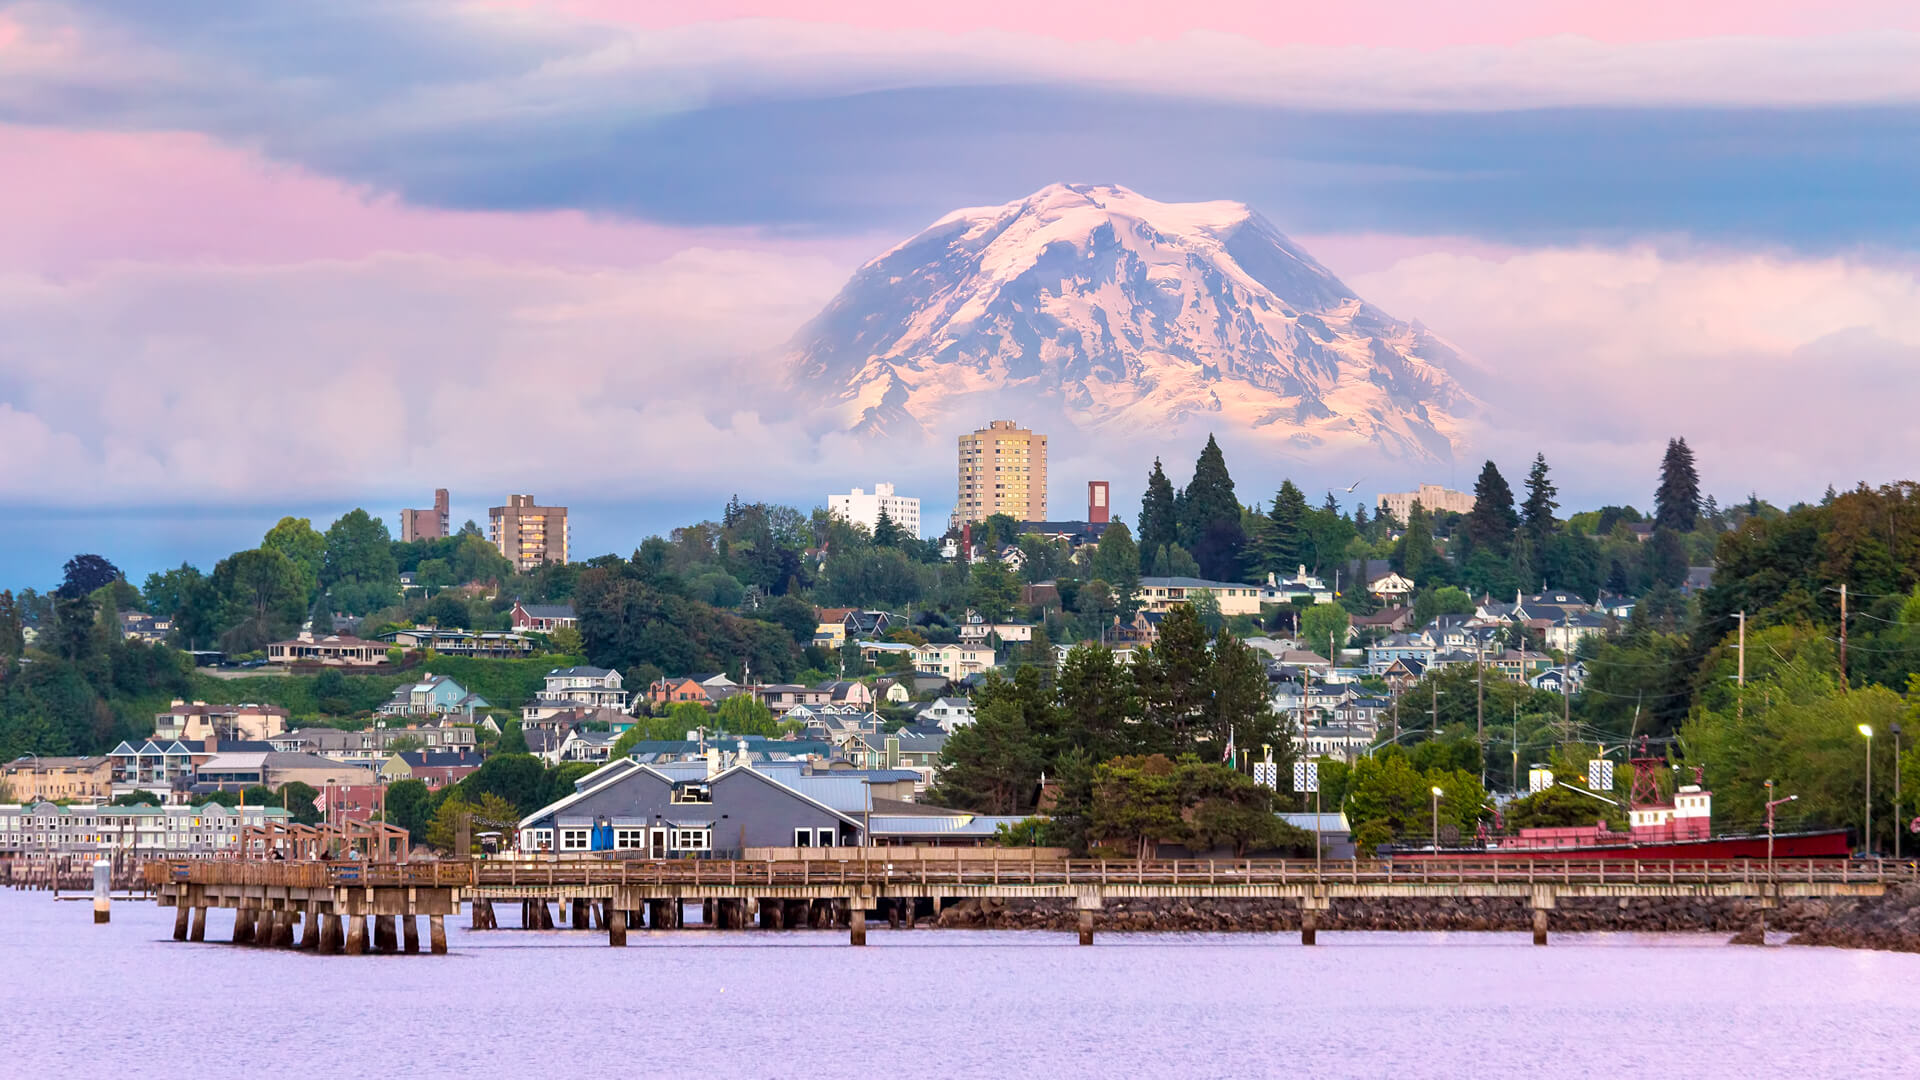 Mount Rainier over Tacoma Washington waterfront during alpenglow sunset evening.